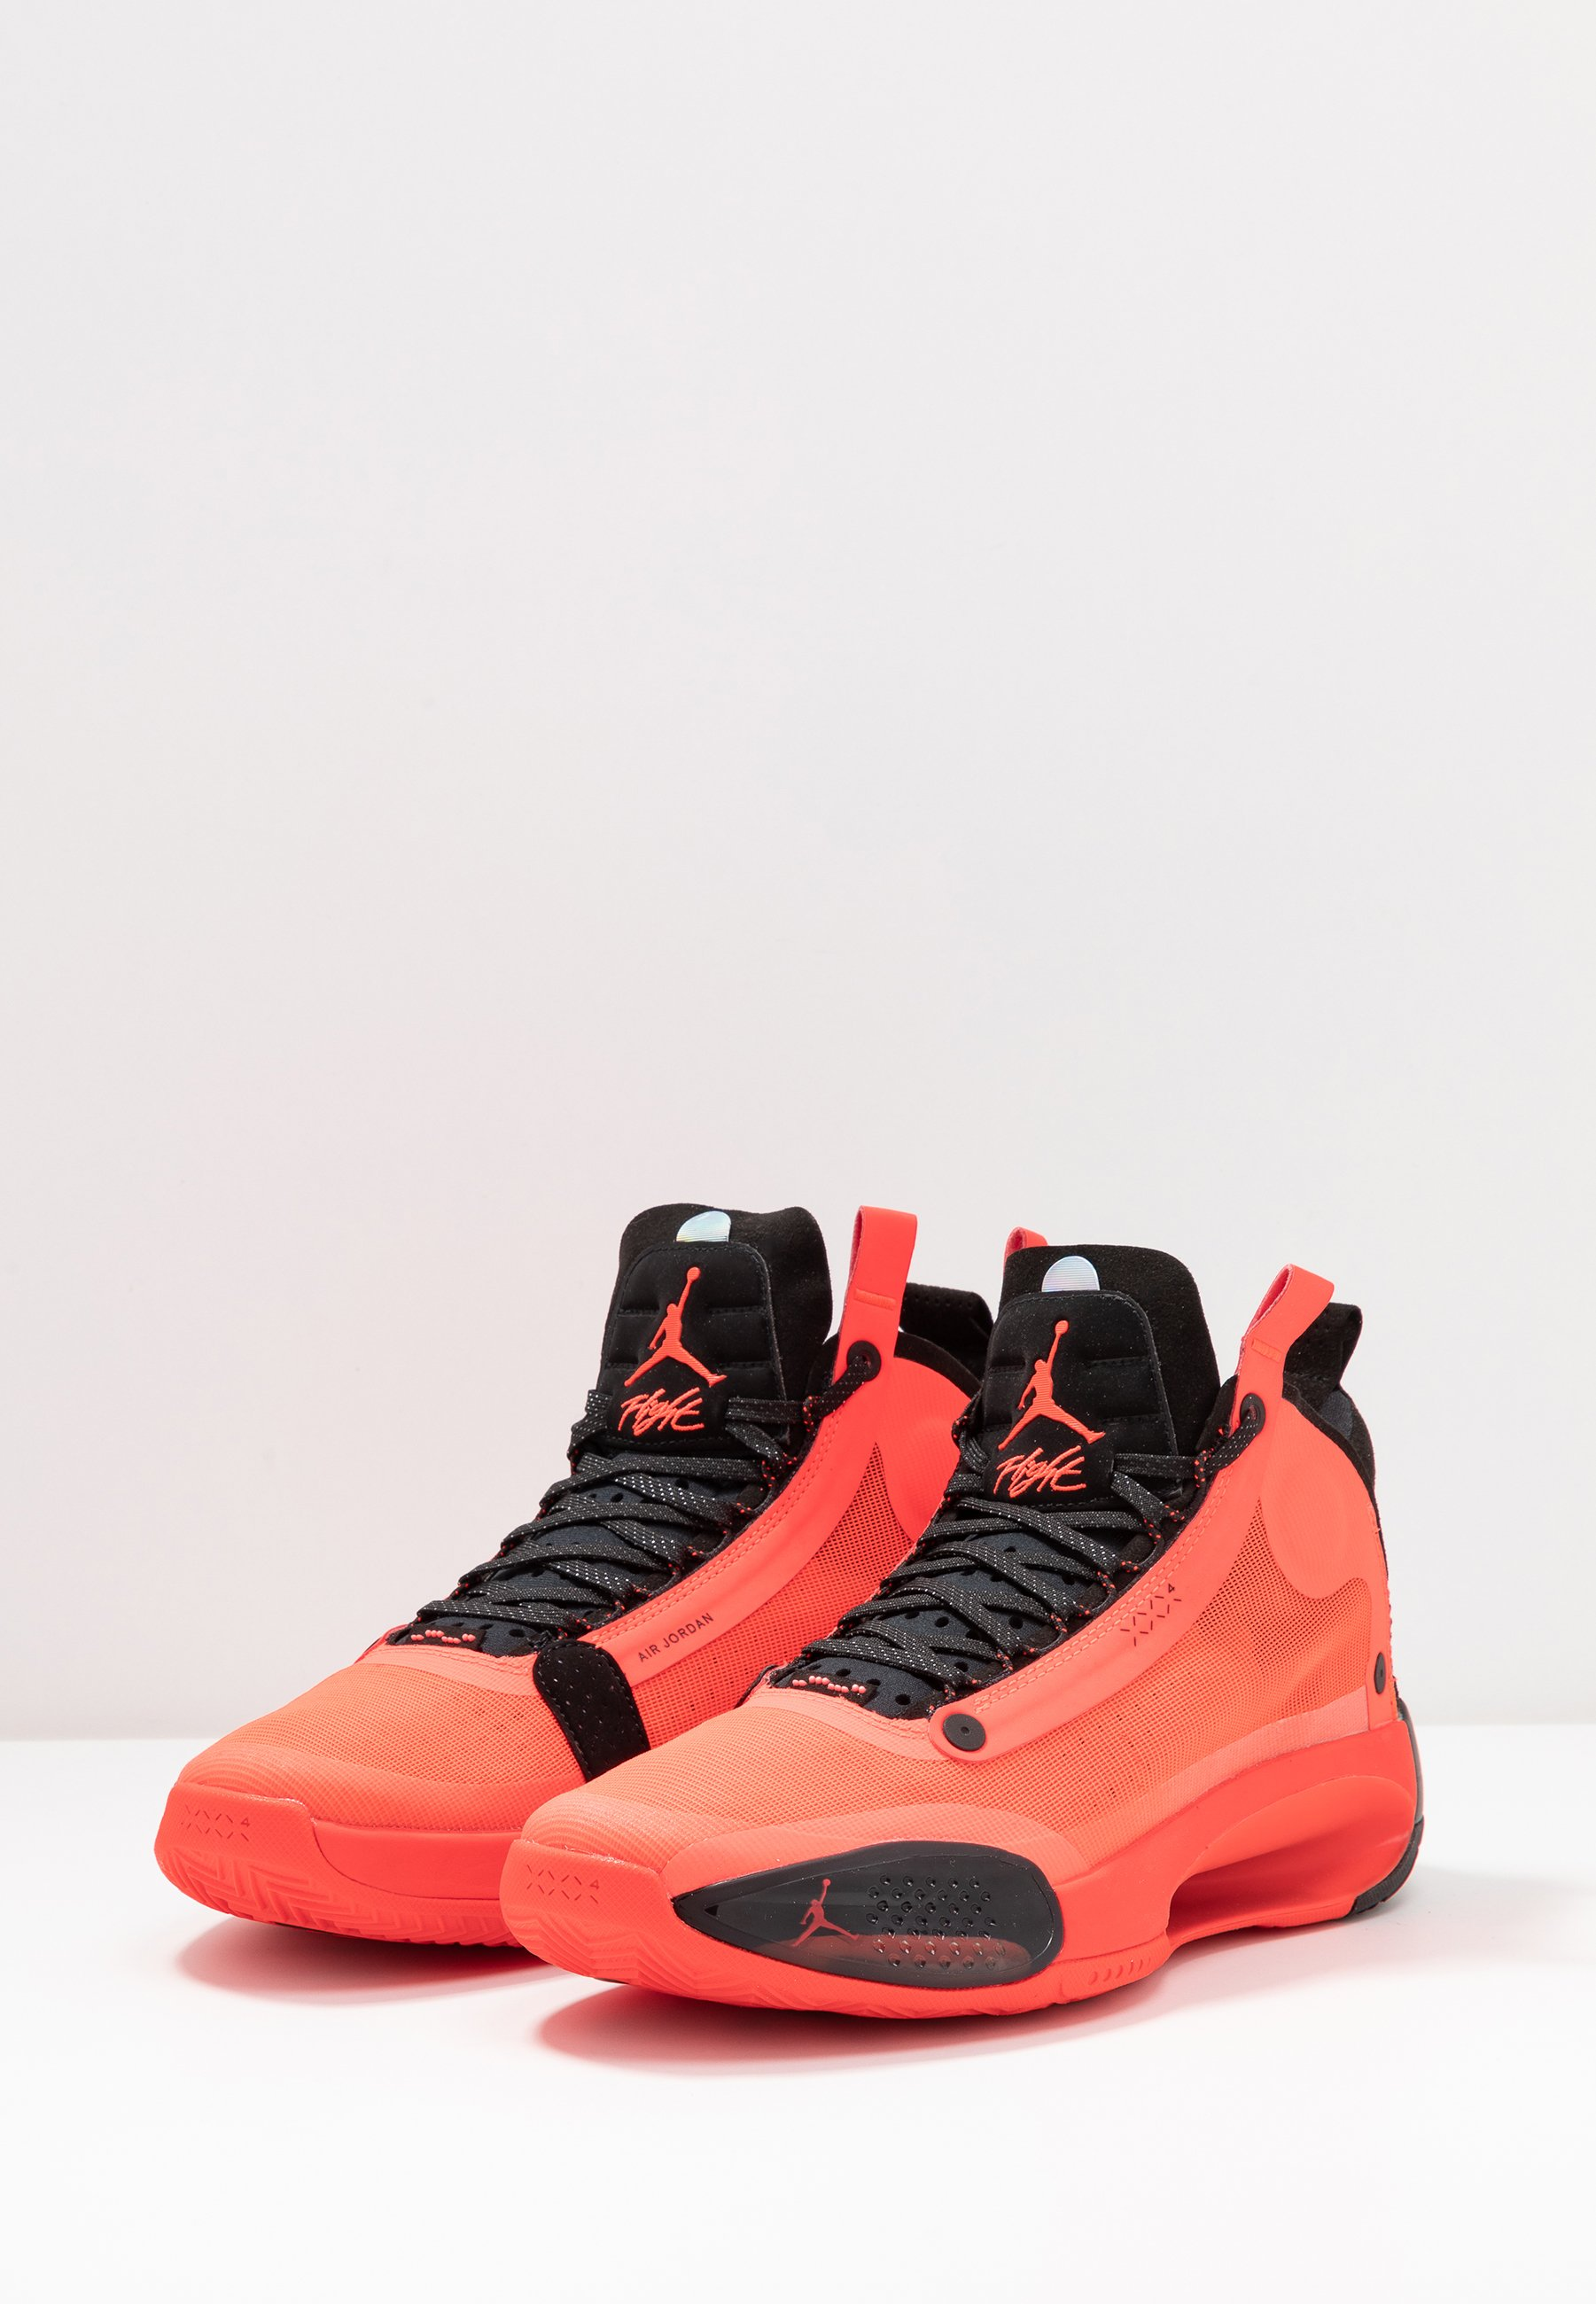 Jordan Air Xxxiv - Chaussures De Basket Infrared/black